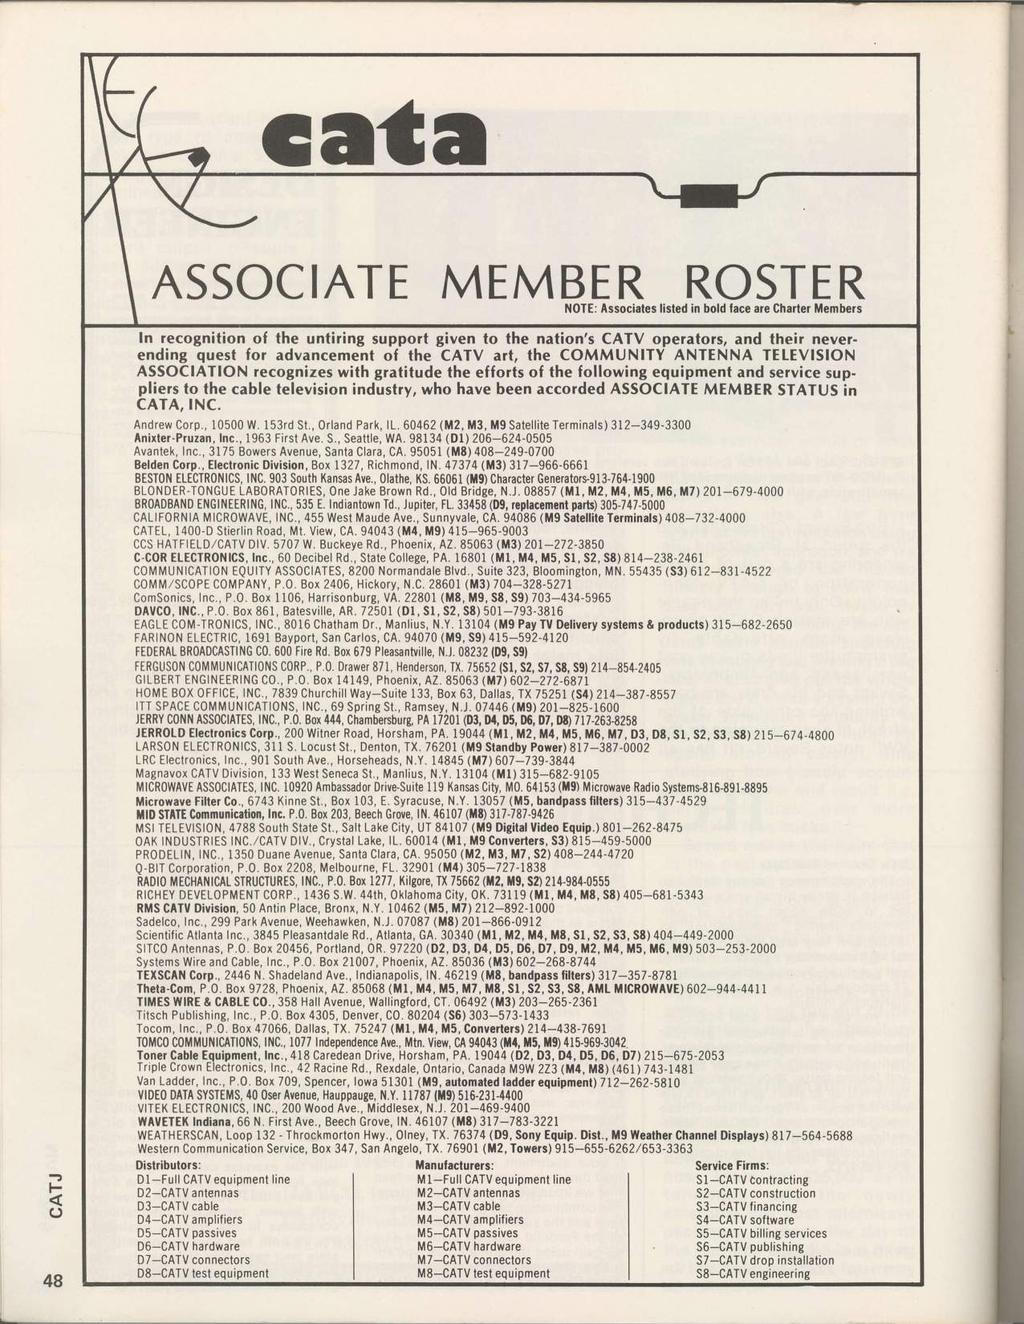 cata ASSOCATE MEMBERROSTER il0te: Associates listed in bold lace are Charter Members - F o n recognition of the untiring support given to the nation's CATV operators, and their neverending quest for